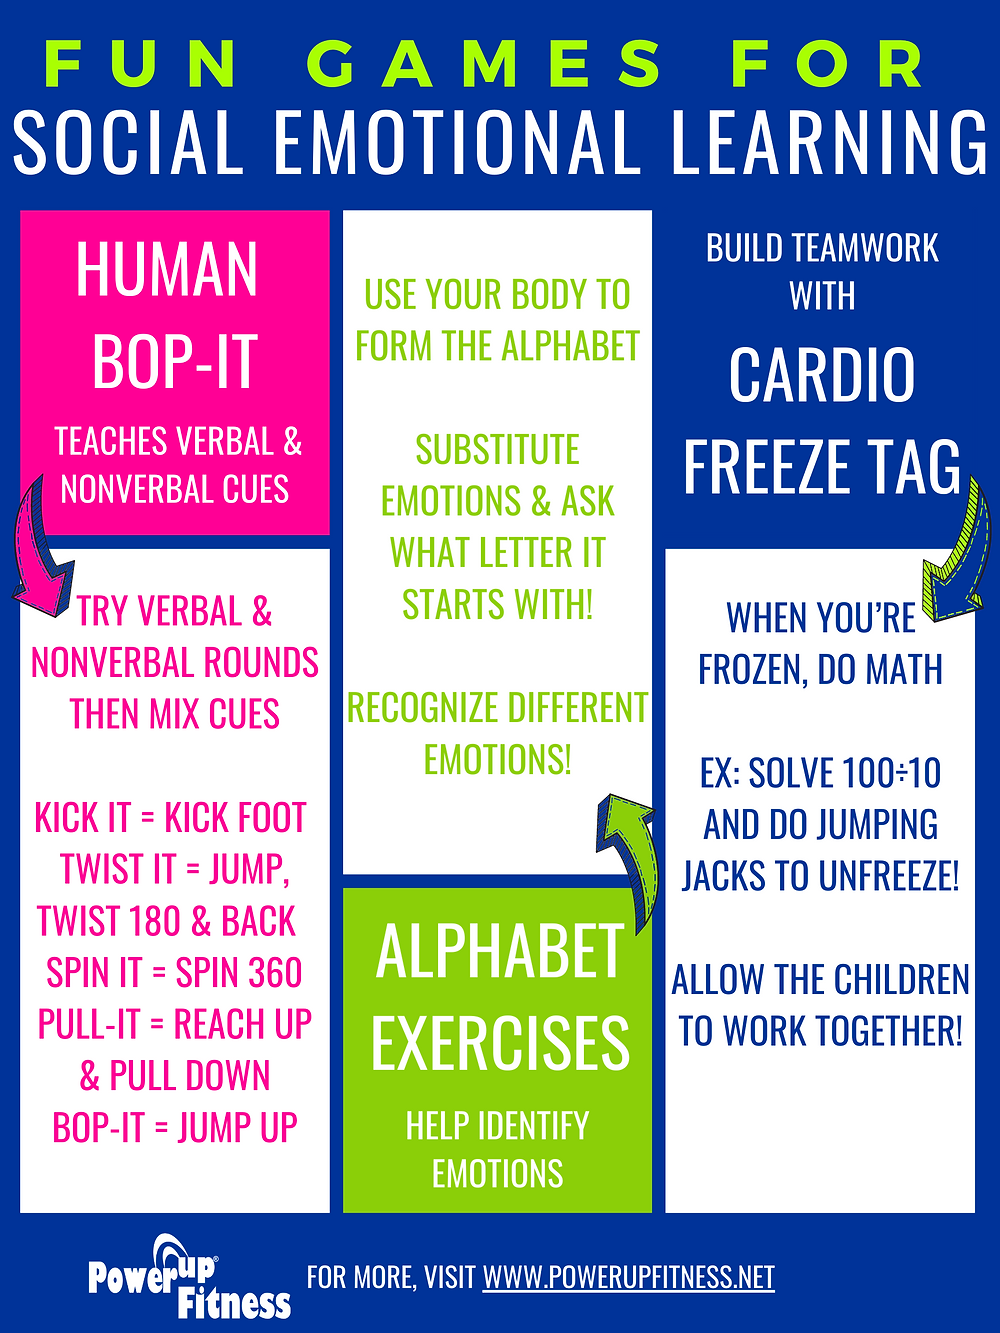 Here is an infographic of the 3 games Human Bop-It, Alphabet Exercises, and Cardio Freeze Tag in a pdf poster printable format with pink, green and blue.